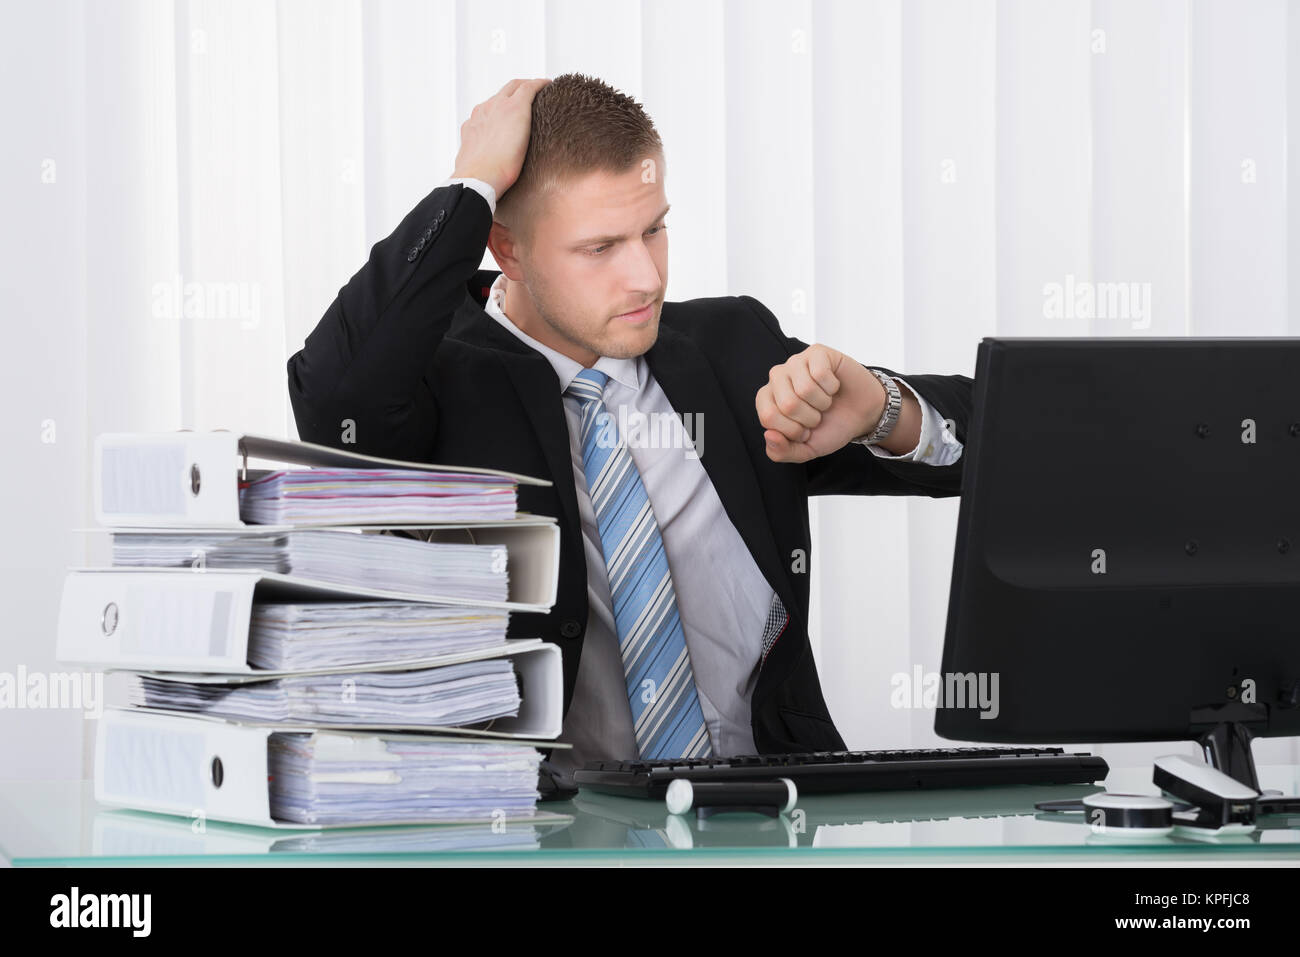 Businessman Looking At Watch - Stock Image